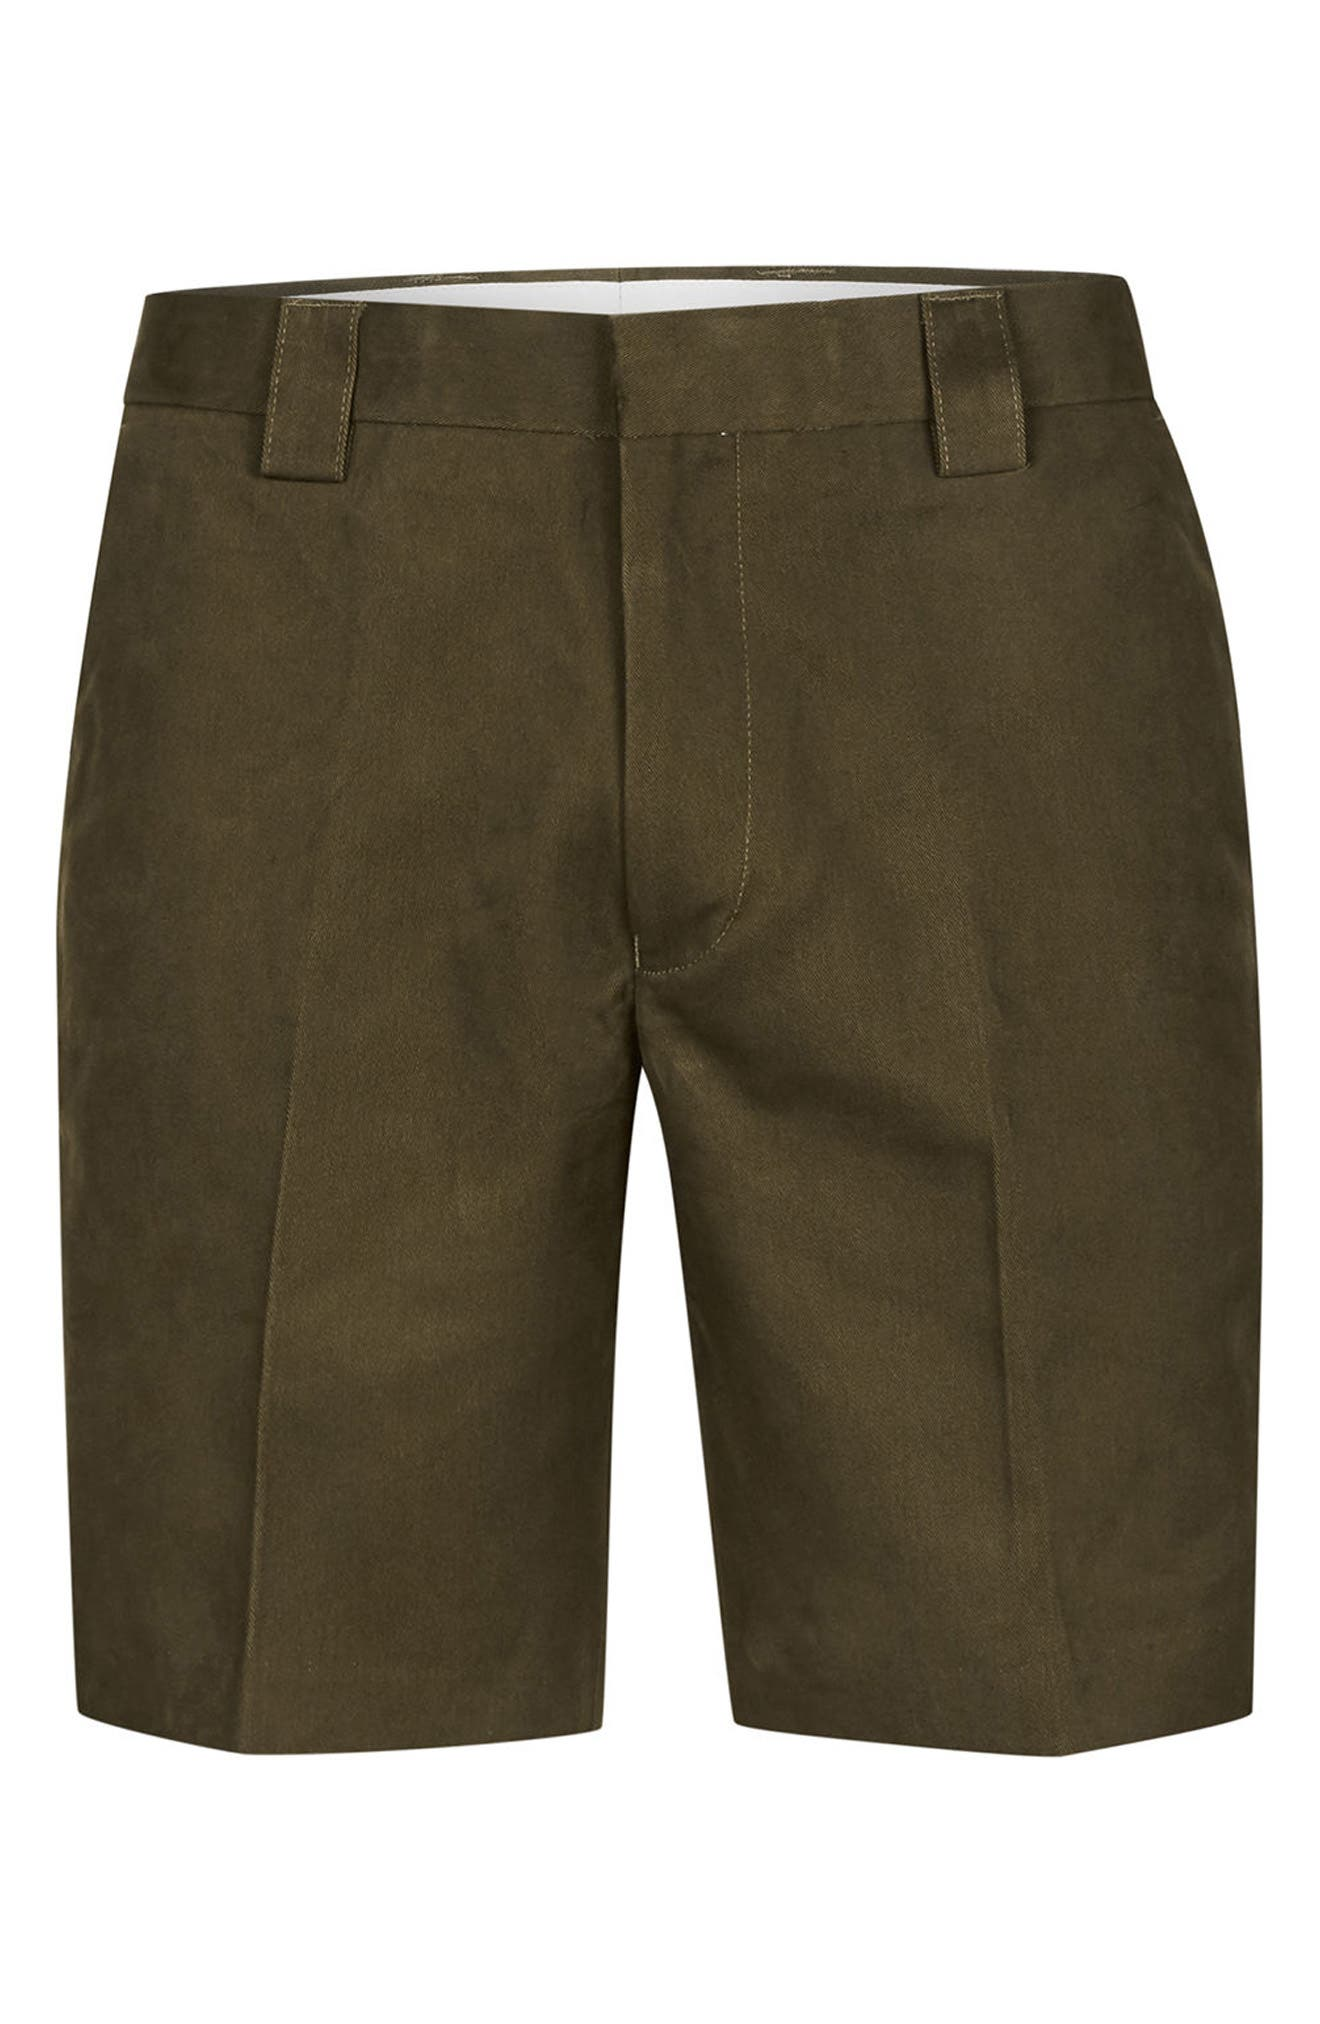 Twill Trouser Shorts,                             Alternate thumbnail 4, color,                             Olive